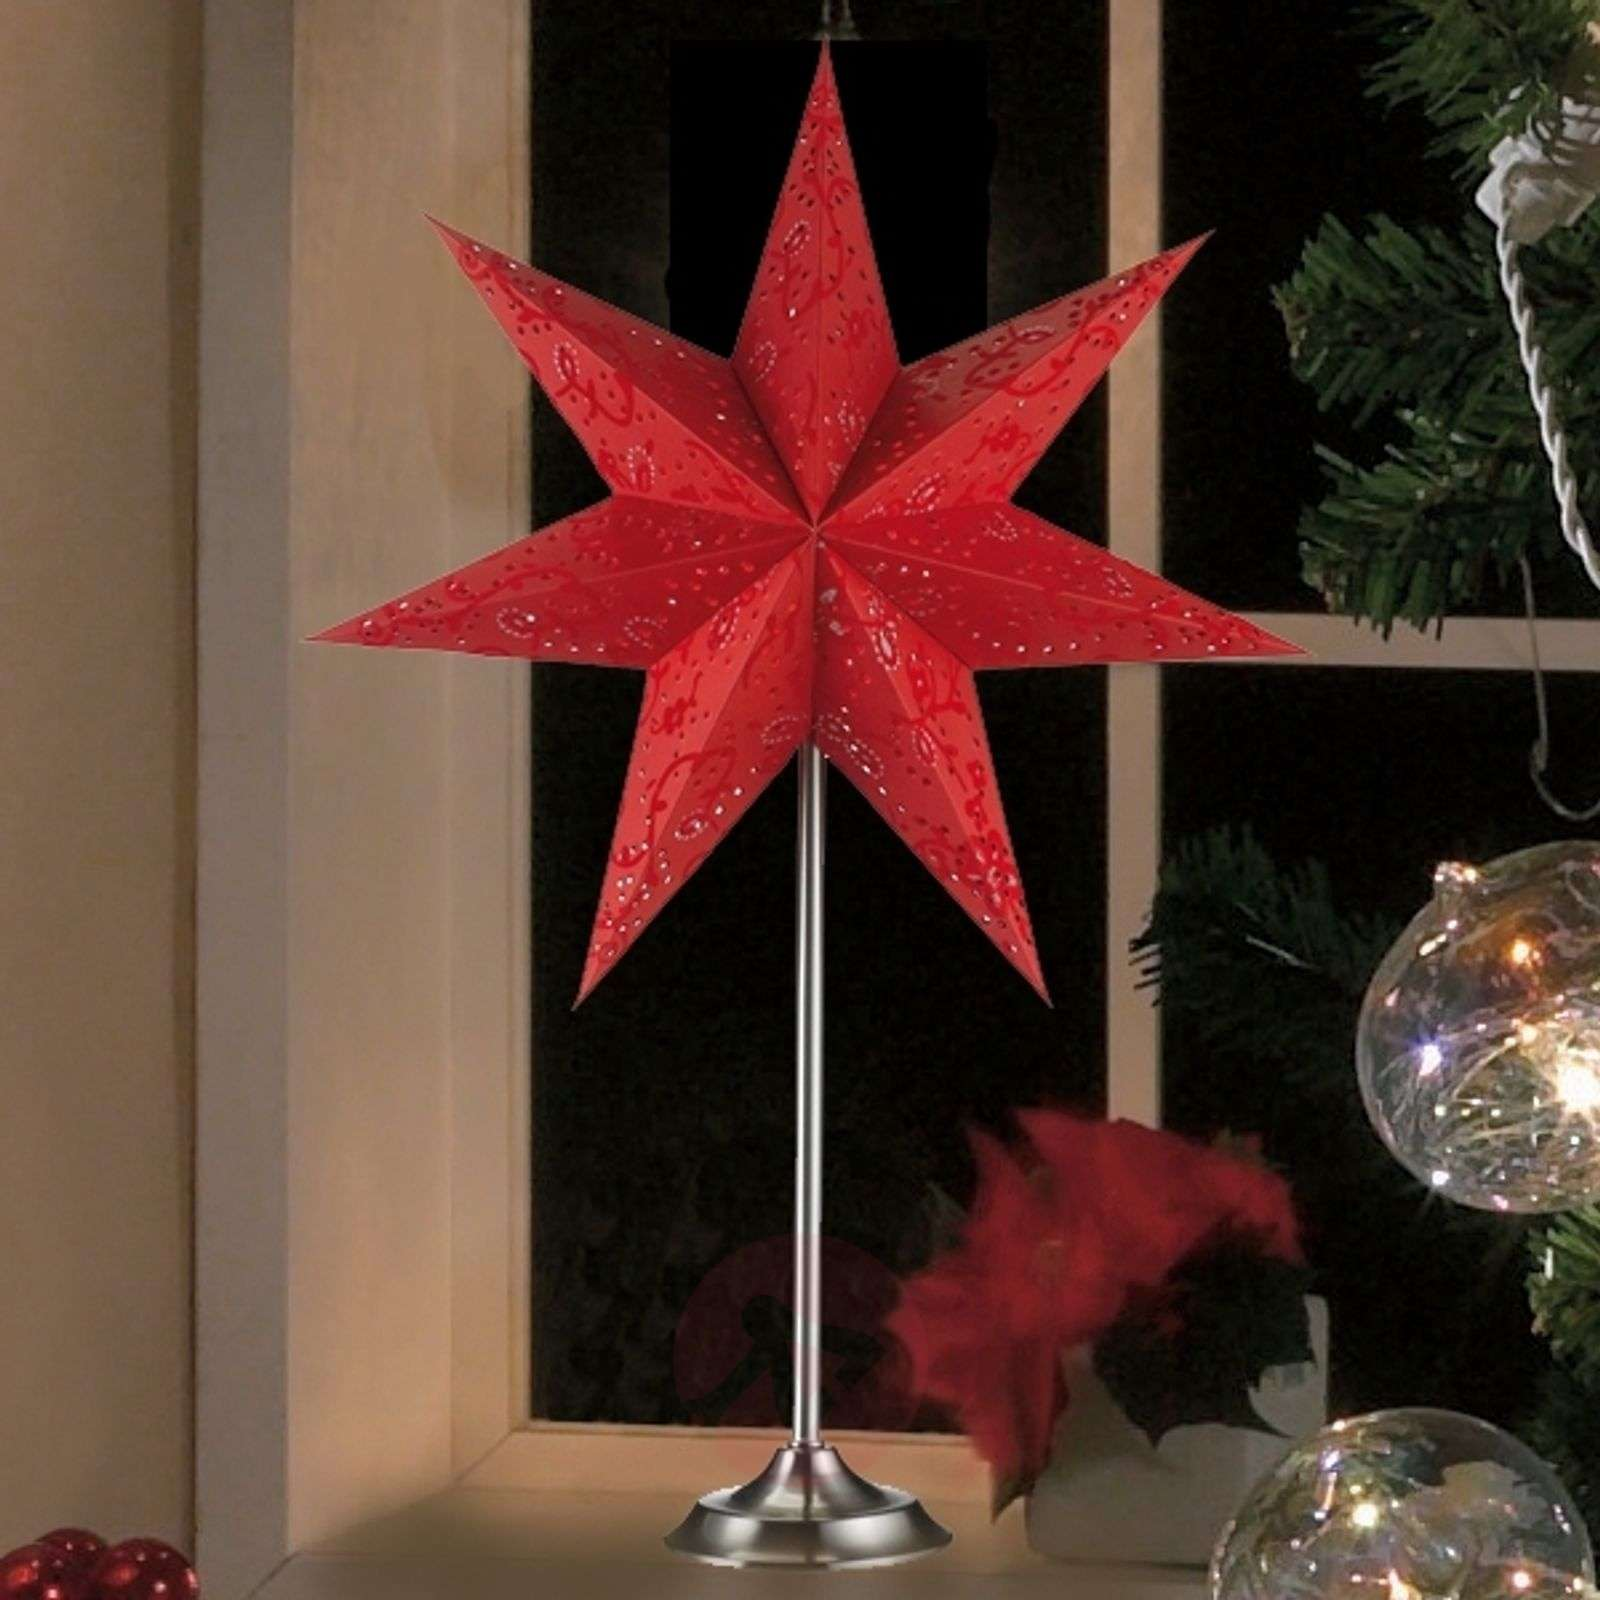 Beautiful star Aratorp as table light, 45 x 64 cm-6507022-01